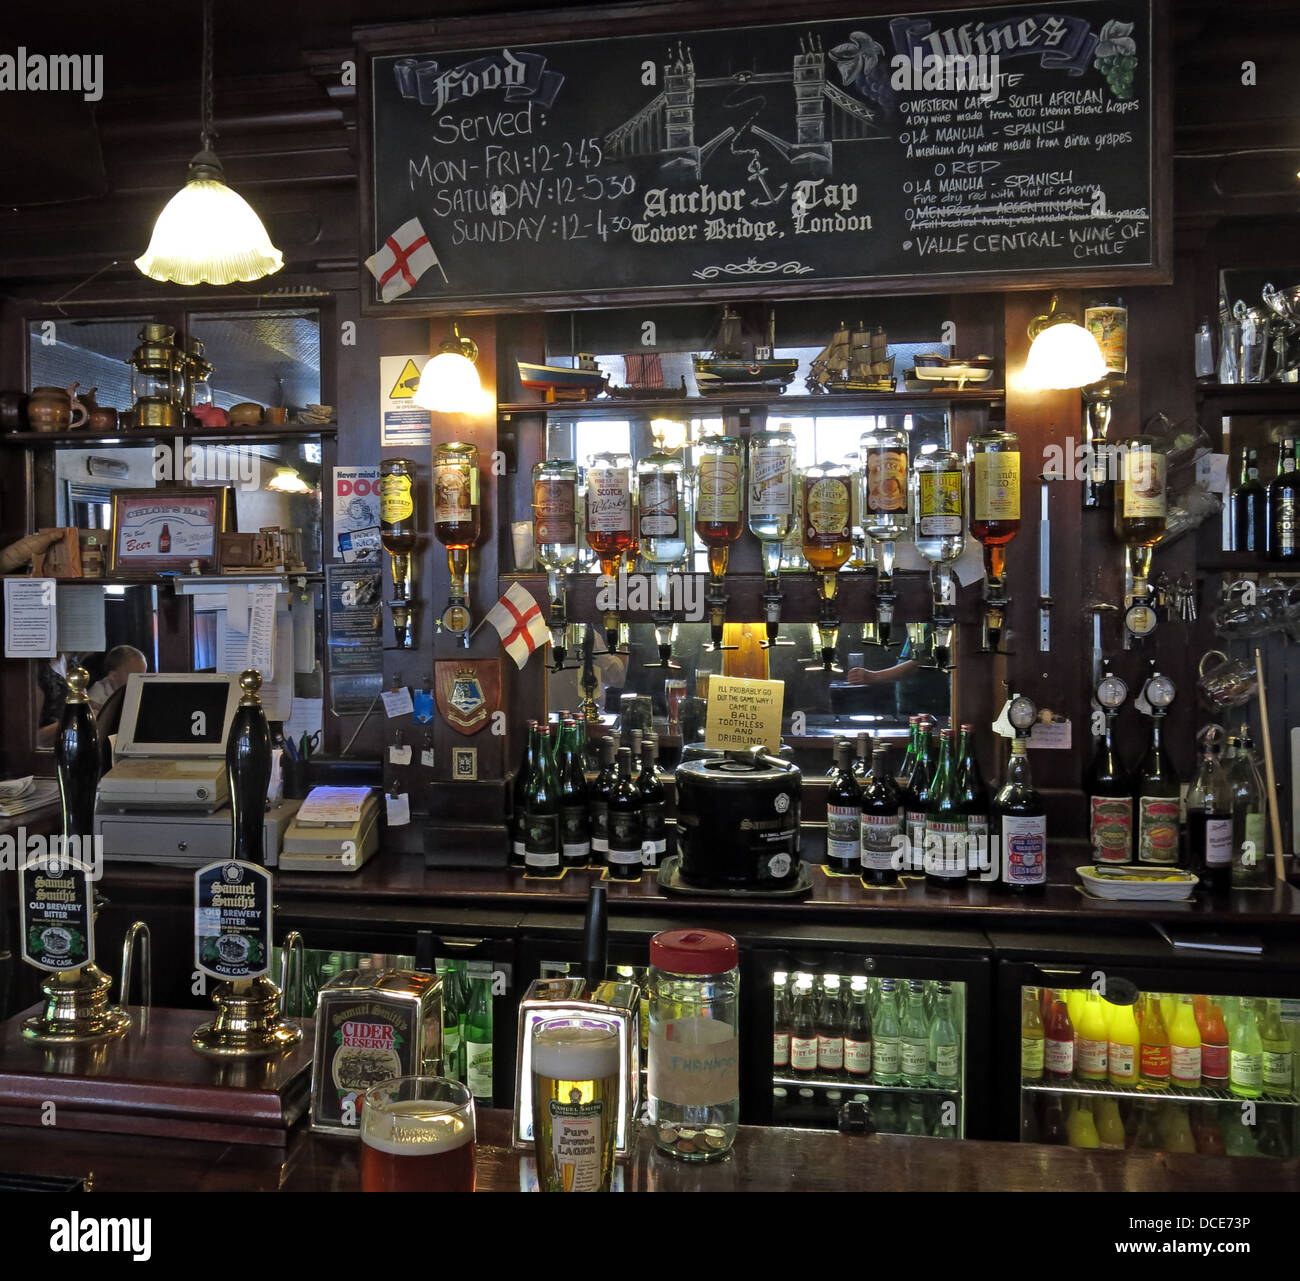 Bar area inside The Anchor Tap Samuel Smiths Pub Southwark London - Stock Image